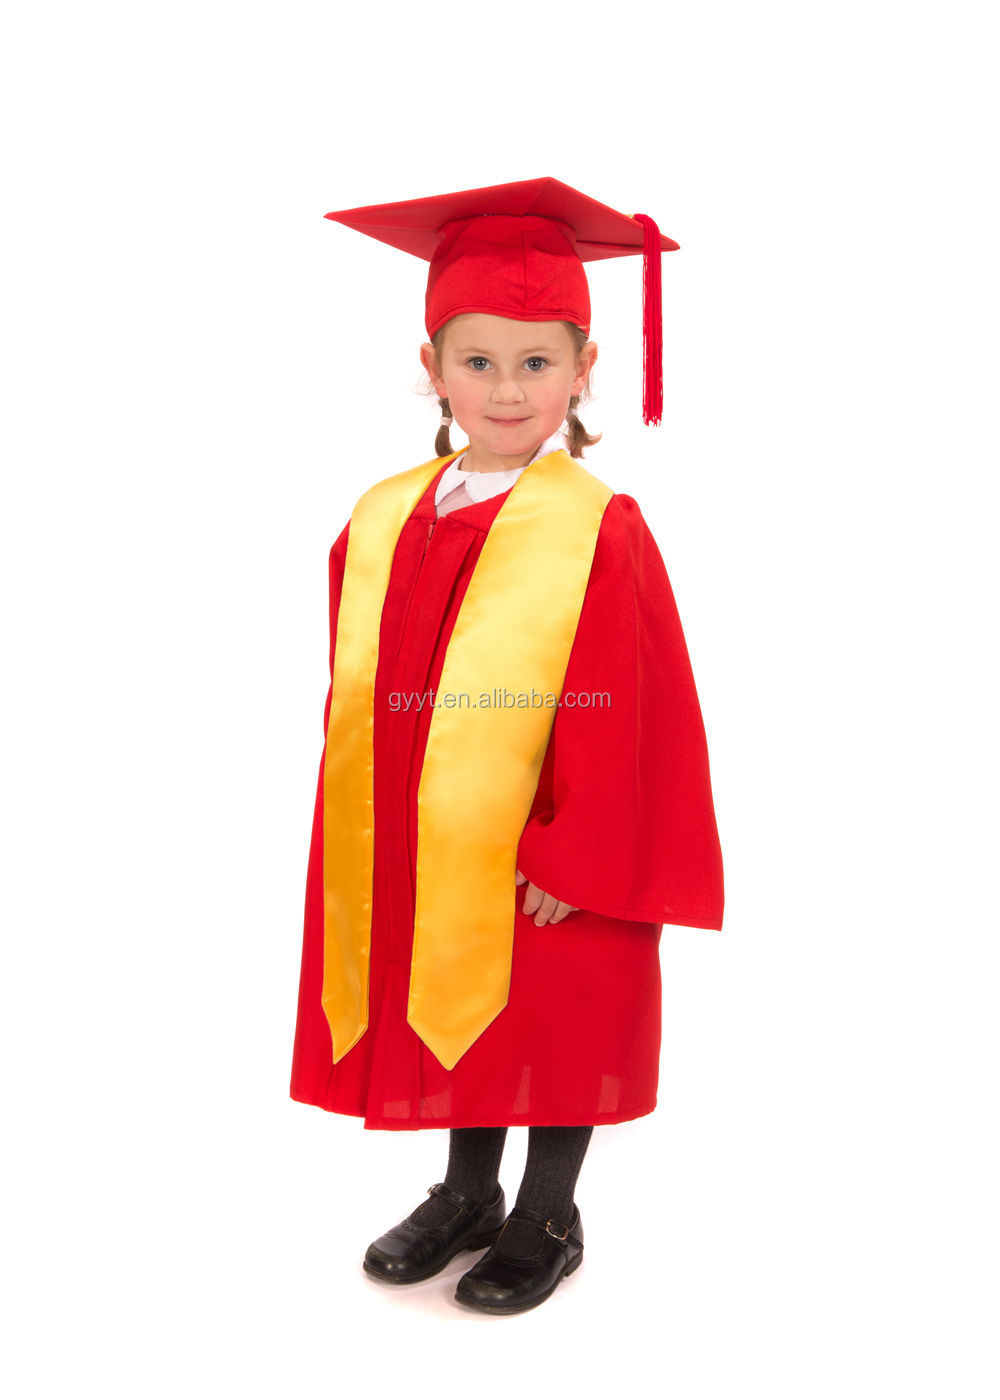 Kid Graduation Cap And Gown, Kid Graduation Cap And Gown Suppliers ...